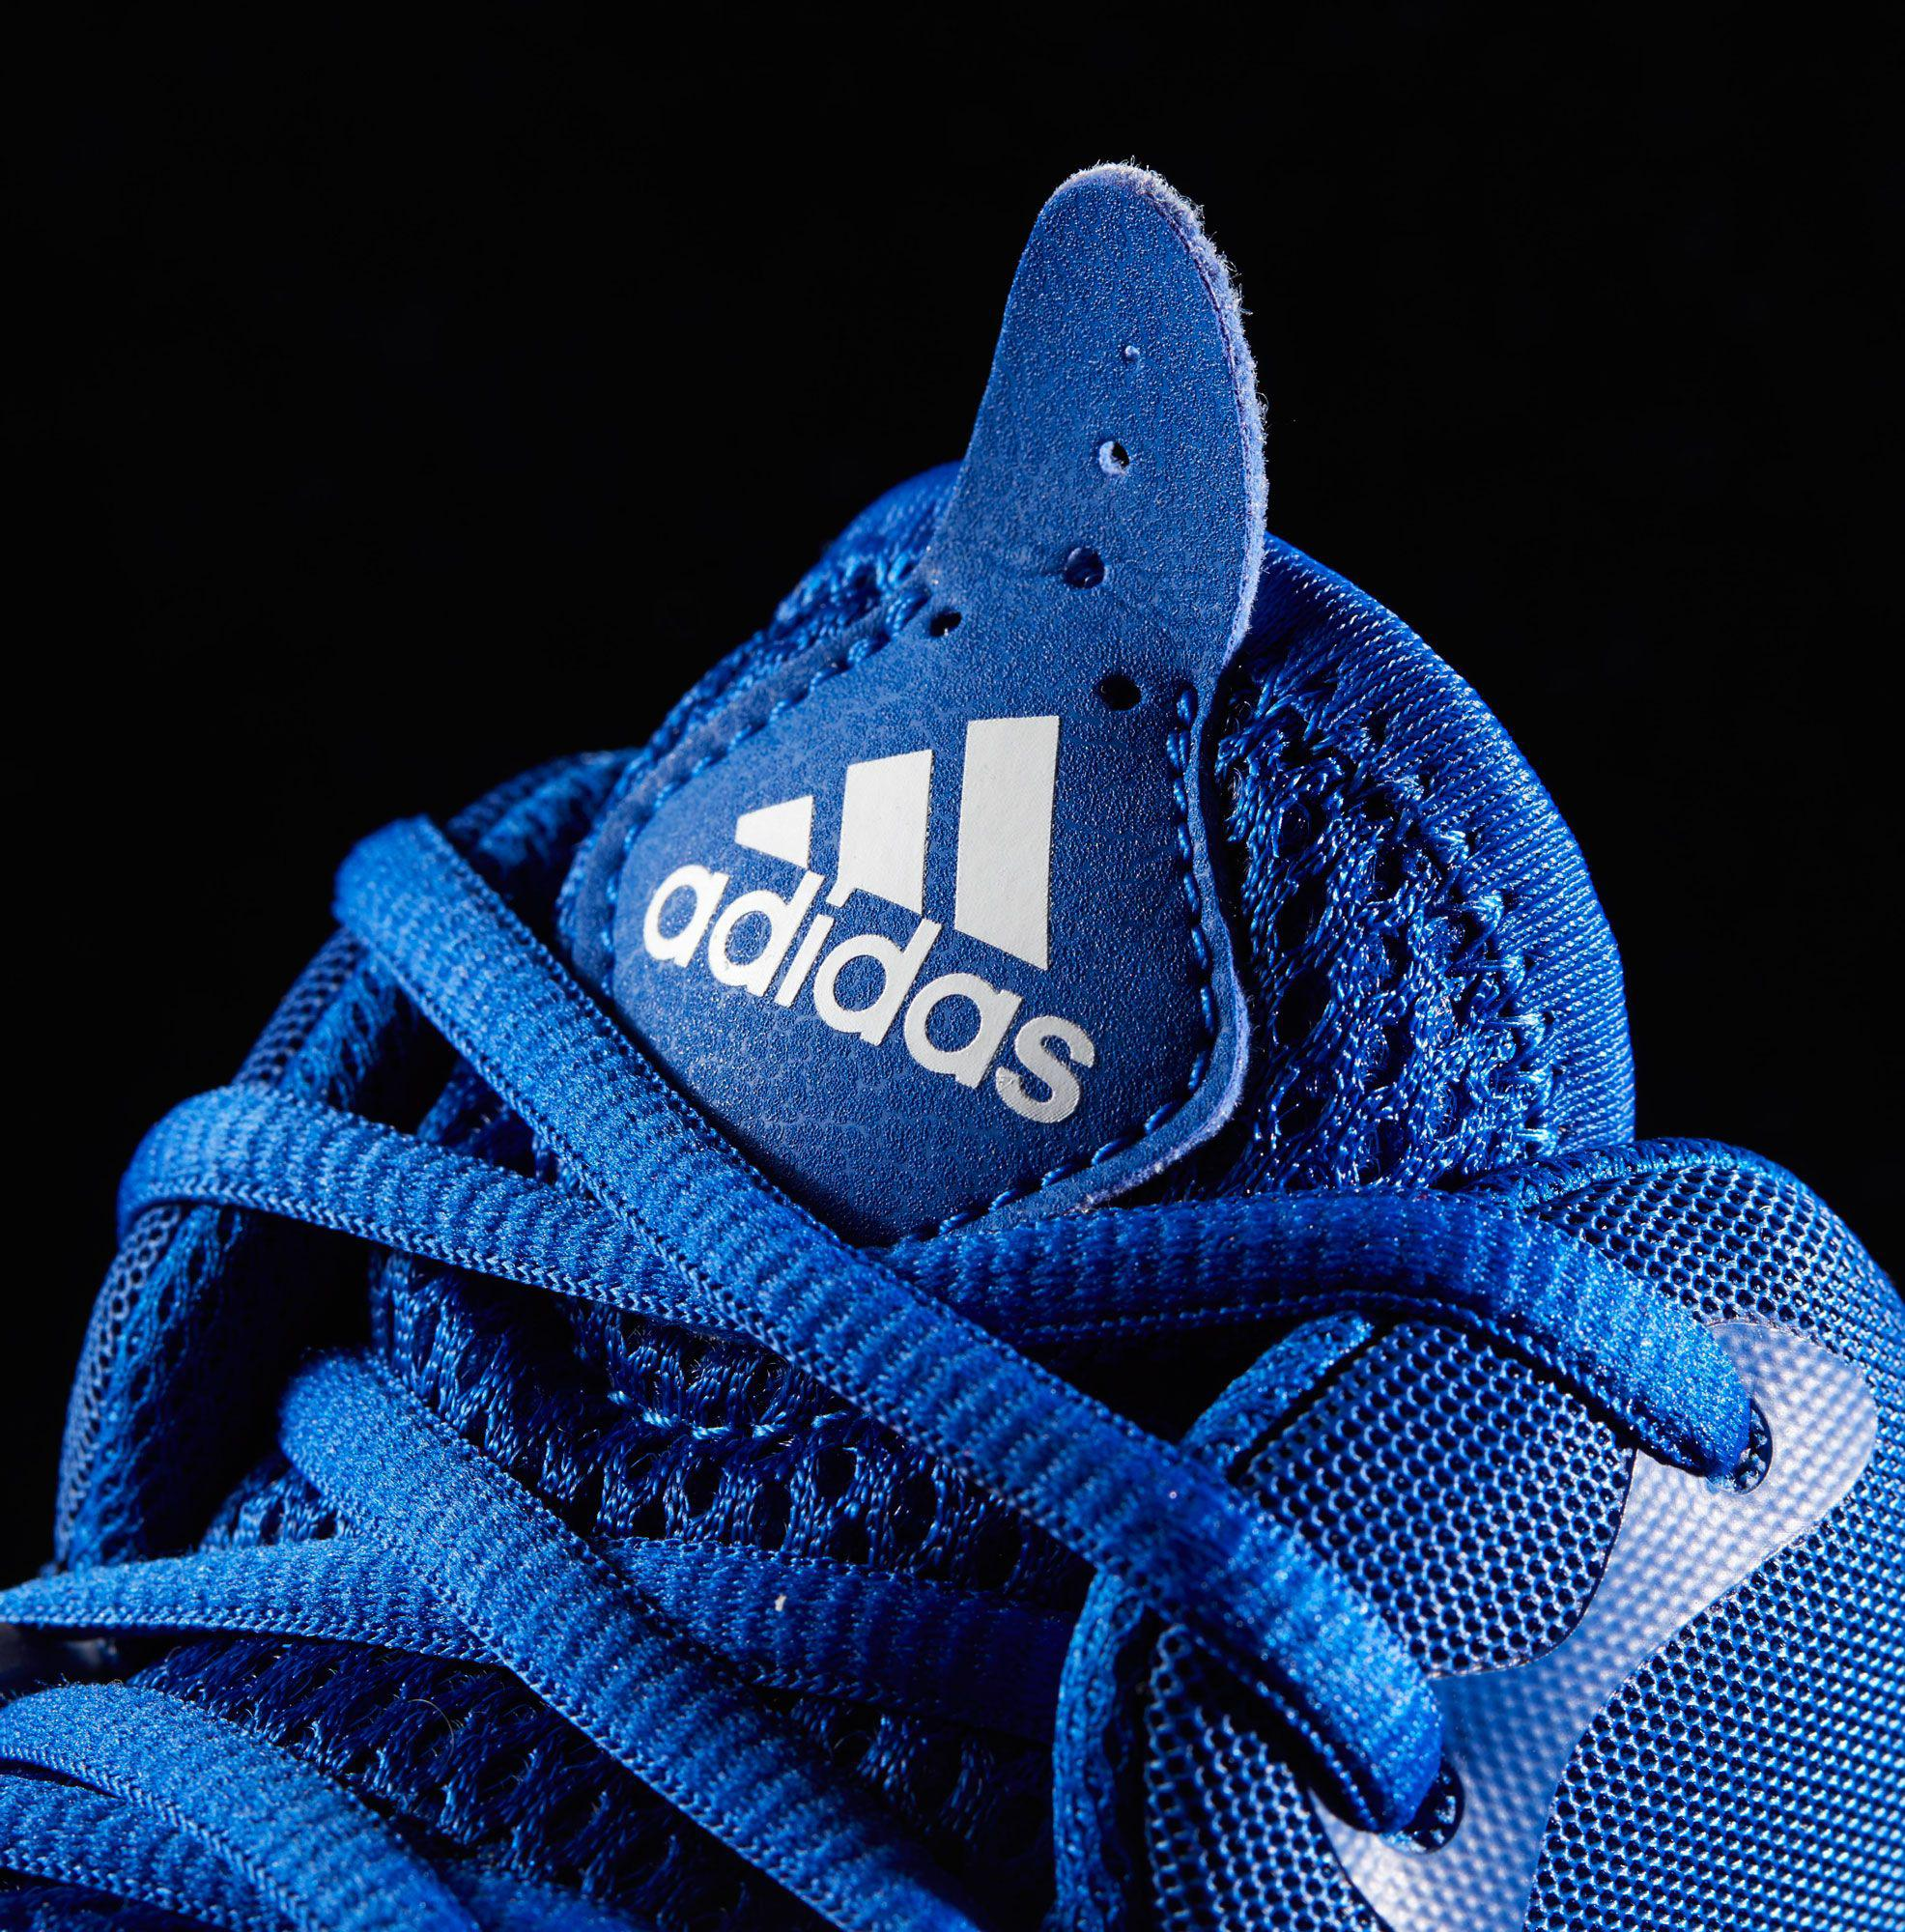 54210bd80682 Lyst - adidas Dual Threat 2017 Basketball Shoes in Blue for Men